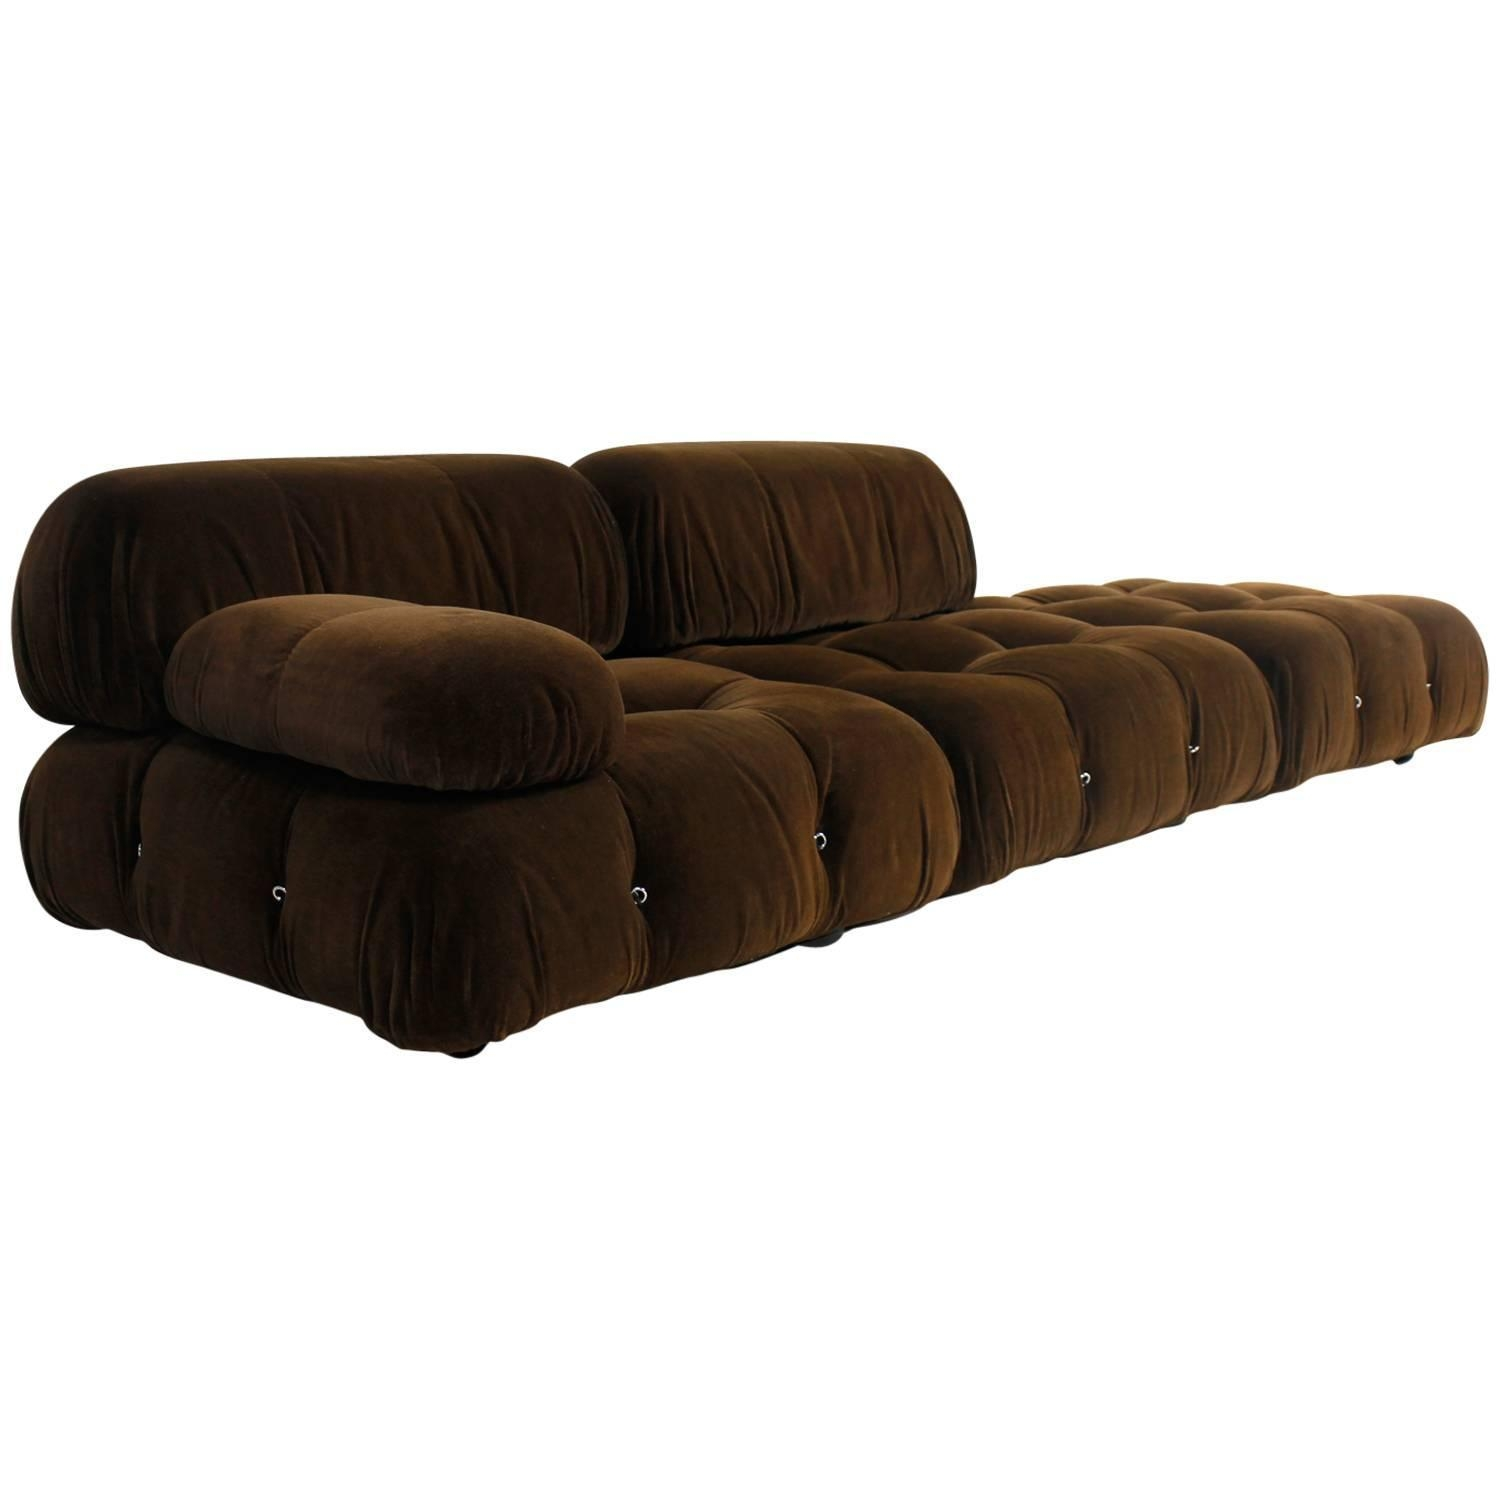 "Beautiful 1970S Mario Bellini Modular Sofa ""camaleonda"" B&b Italia Throughout Bellini Couches (View 12 of 20)"